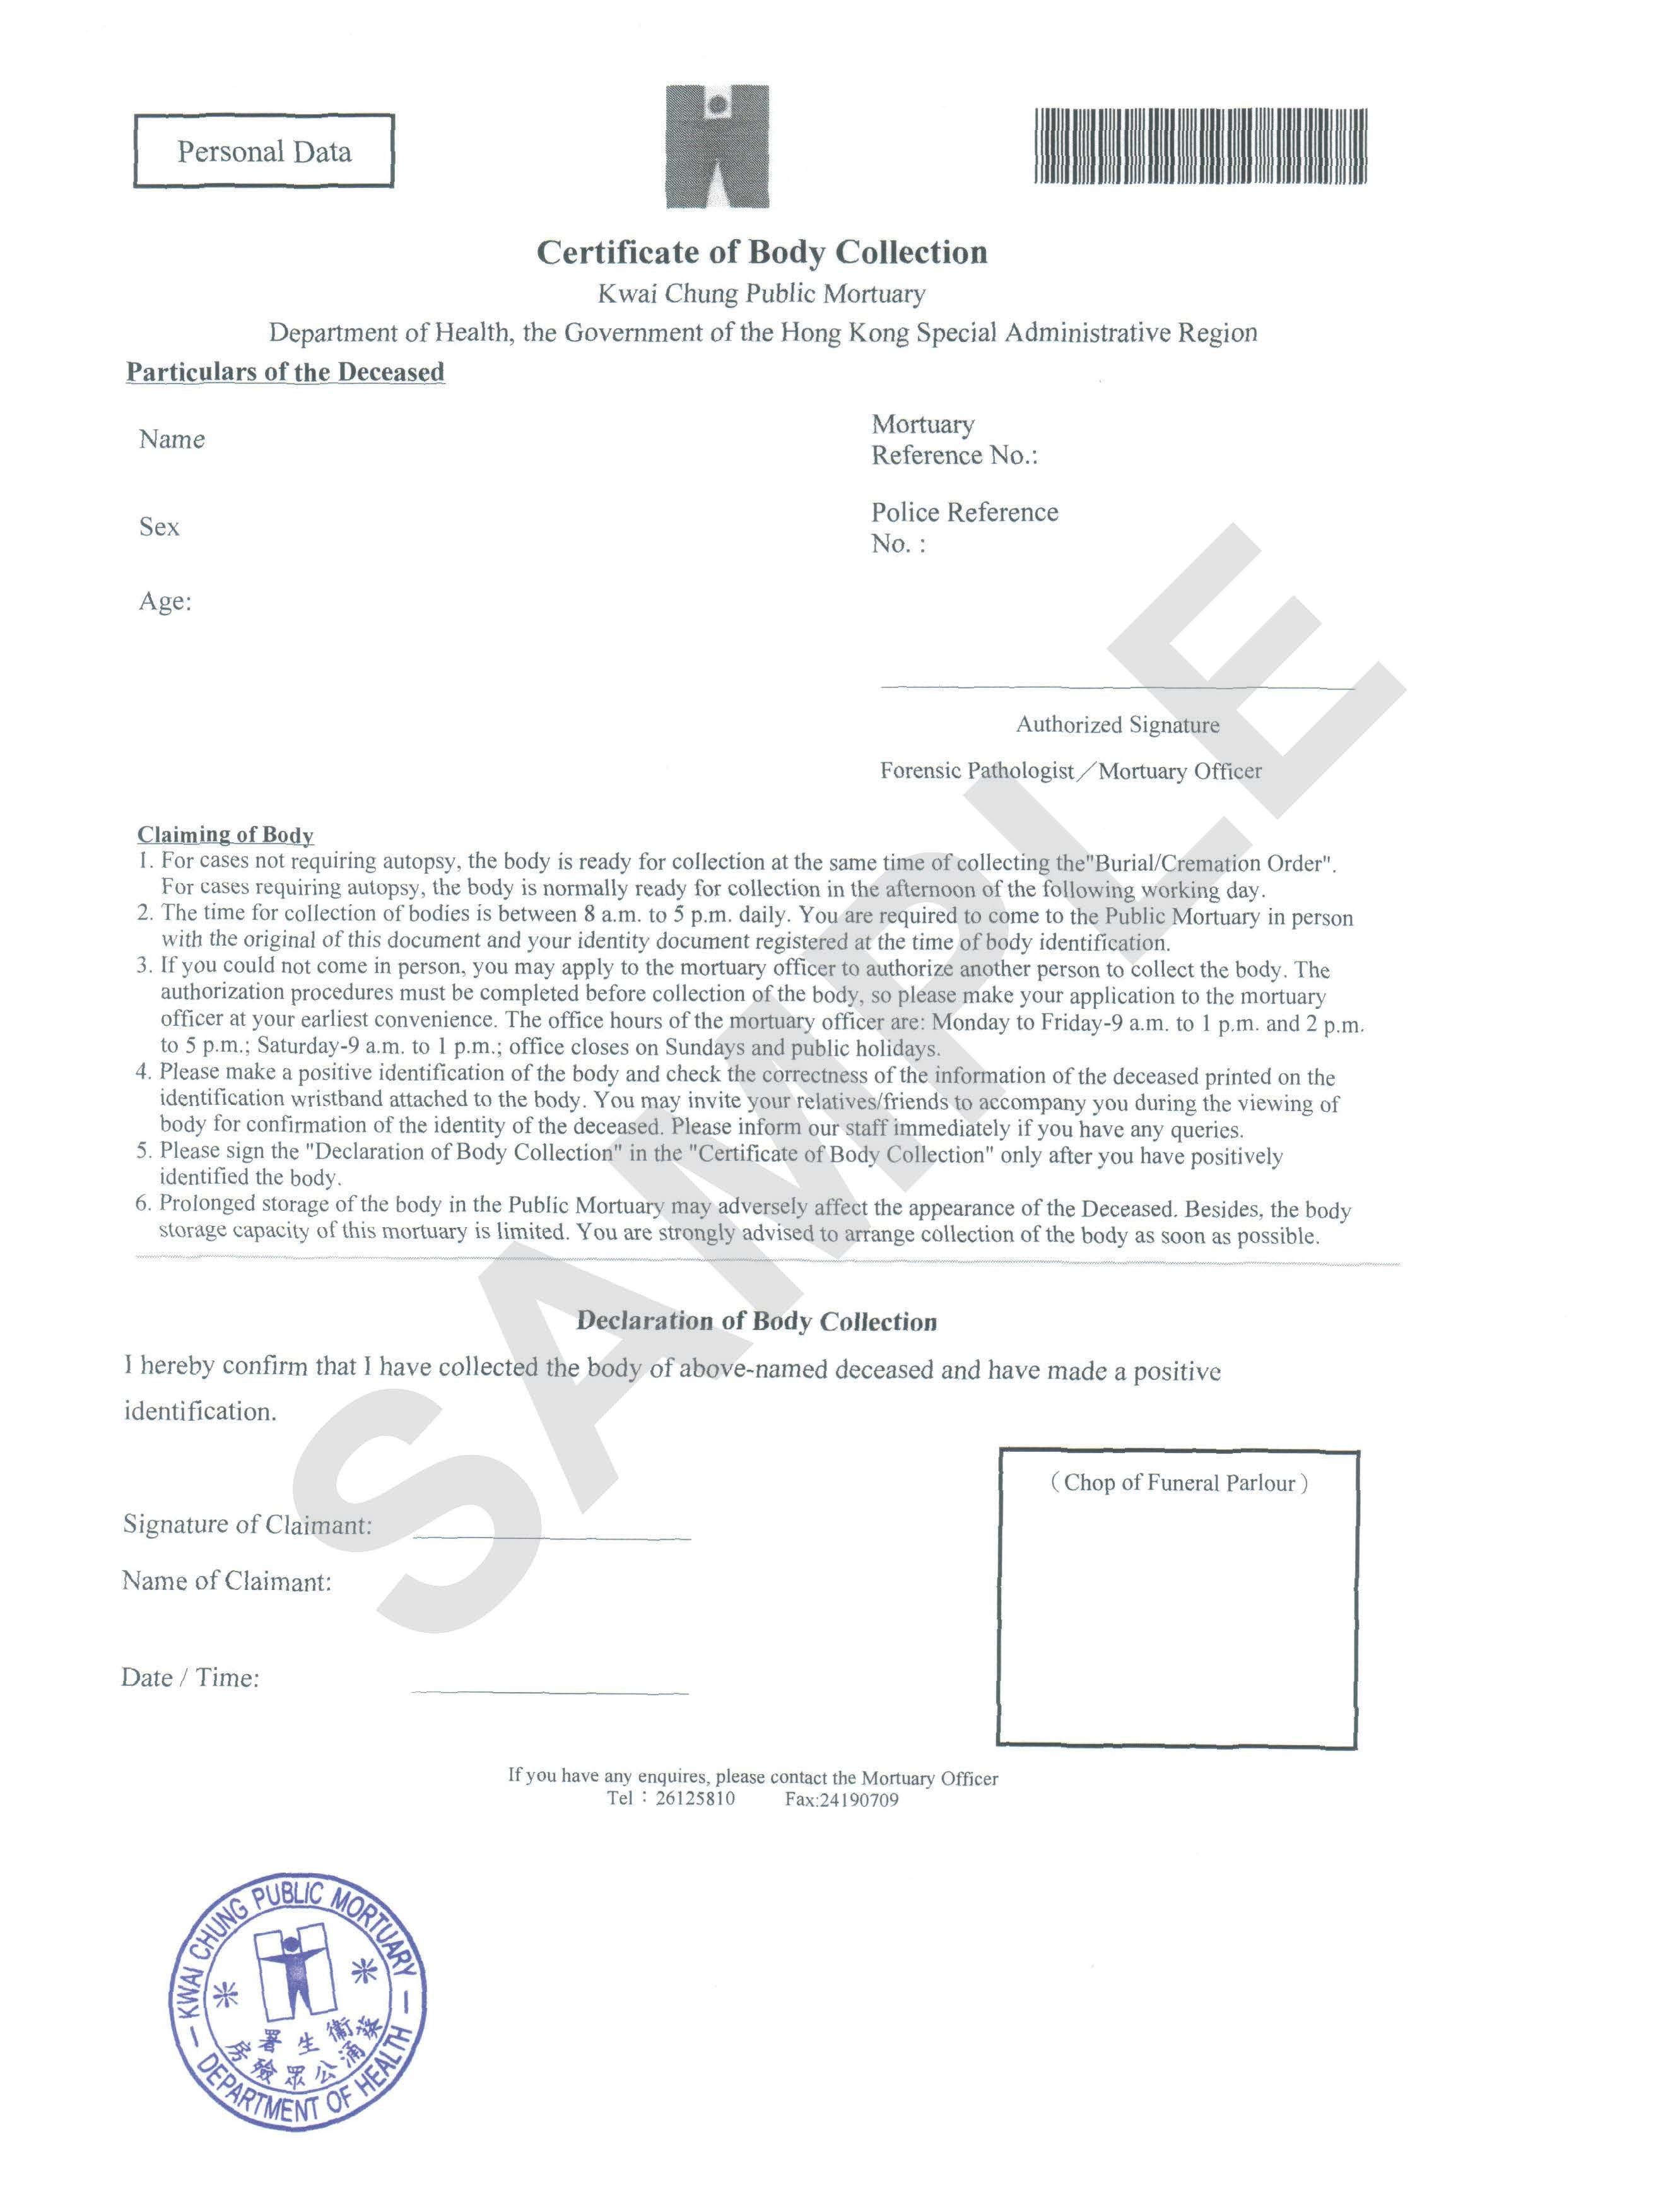 Department Of Health  Forensic Pathology Service  Faq With Certificate Of Disposal Template